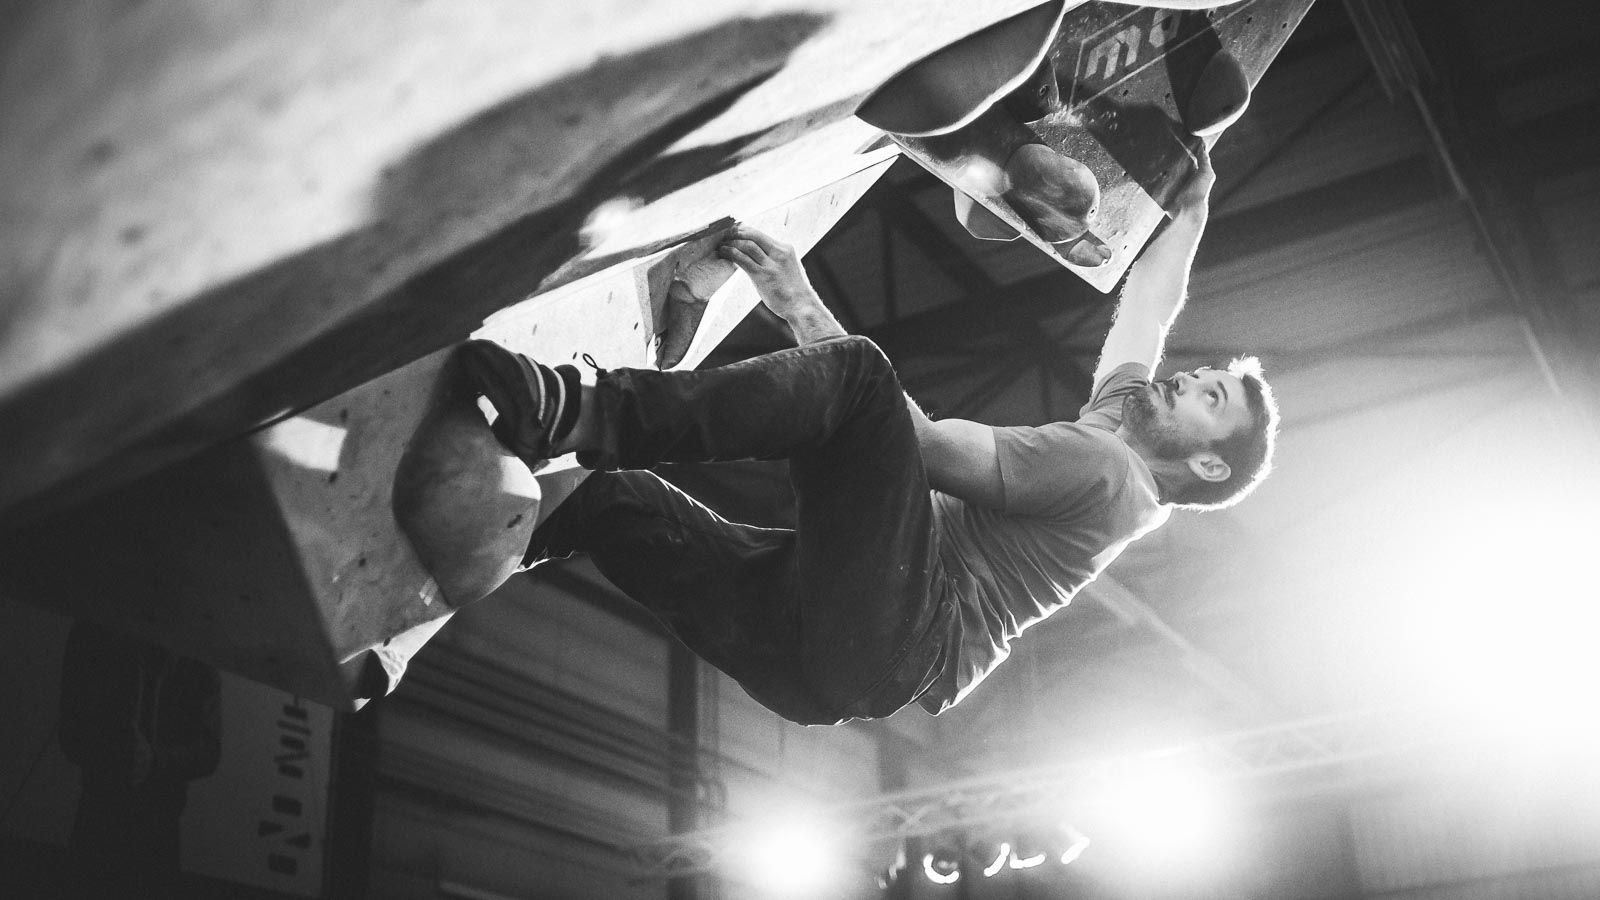 Climber hanging from holds in an indoor steep climbing wall